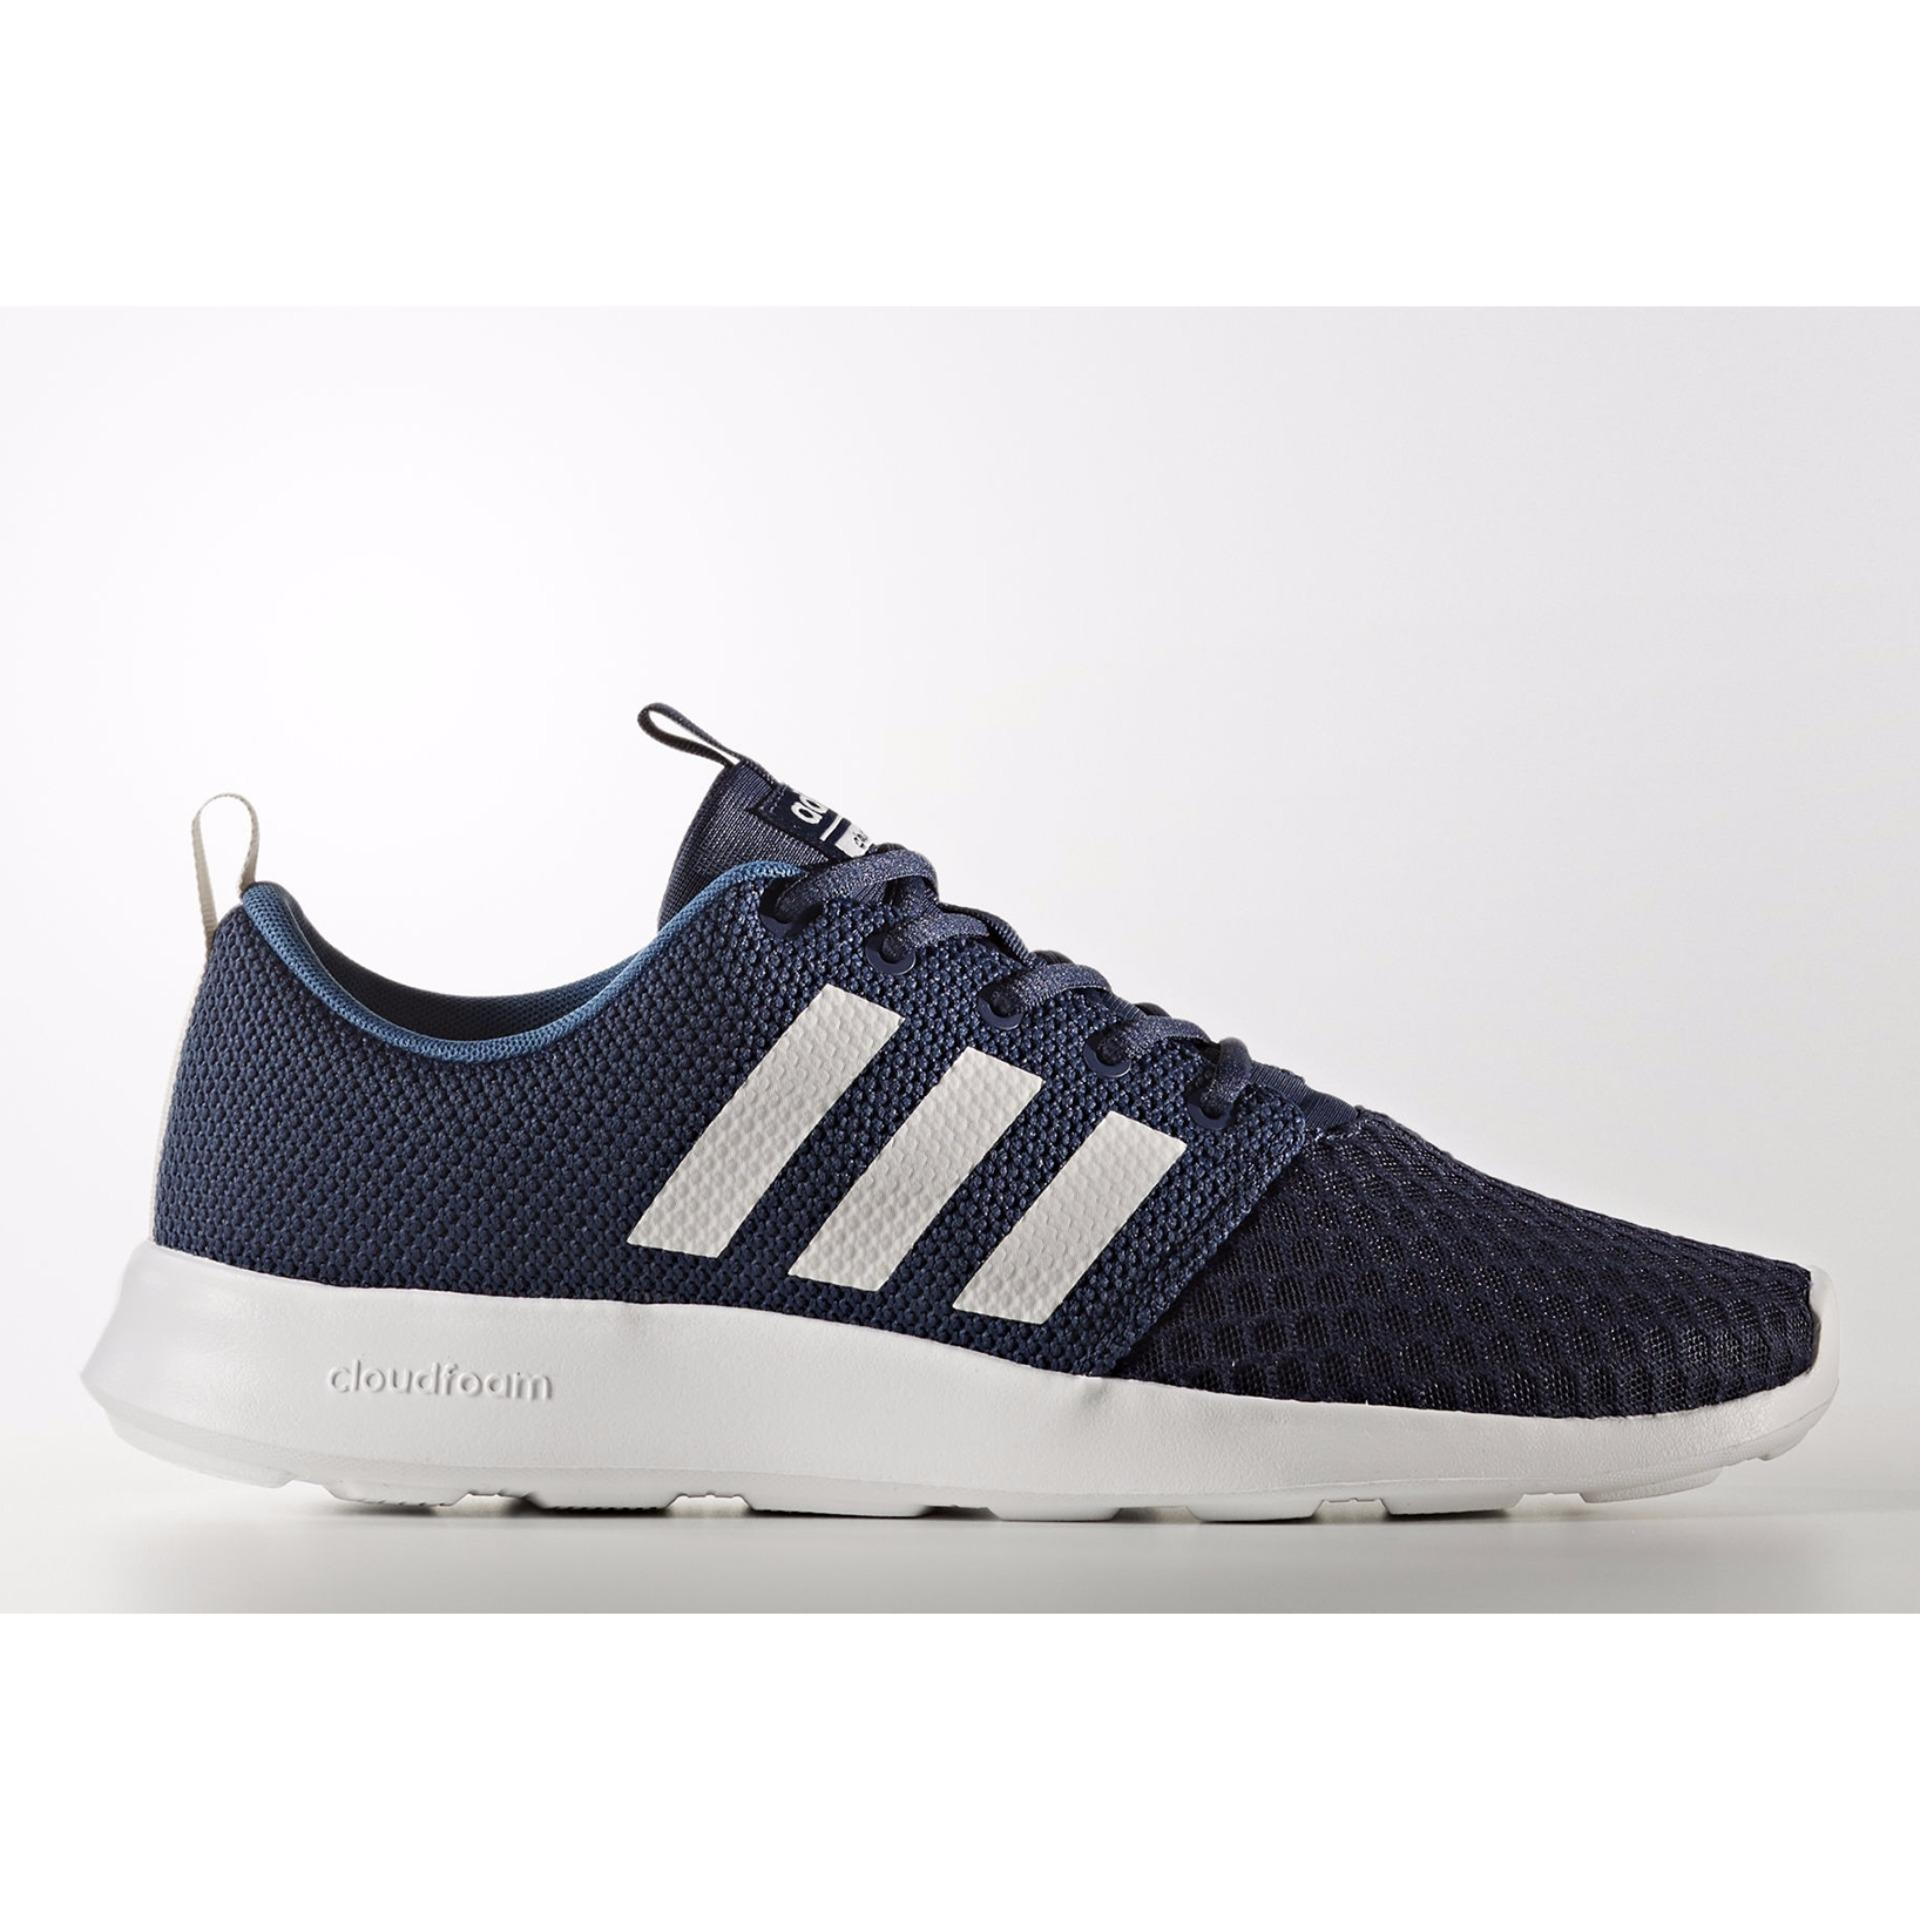 buy online 1594e ea88e ... where to buy giày th thao nam adidas neo cloudfoam swift racer bb9943  b0ec1 f877a